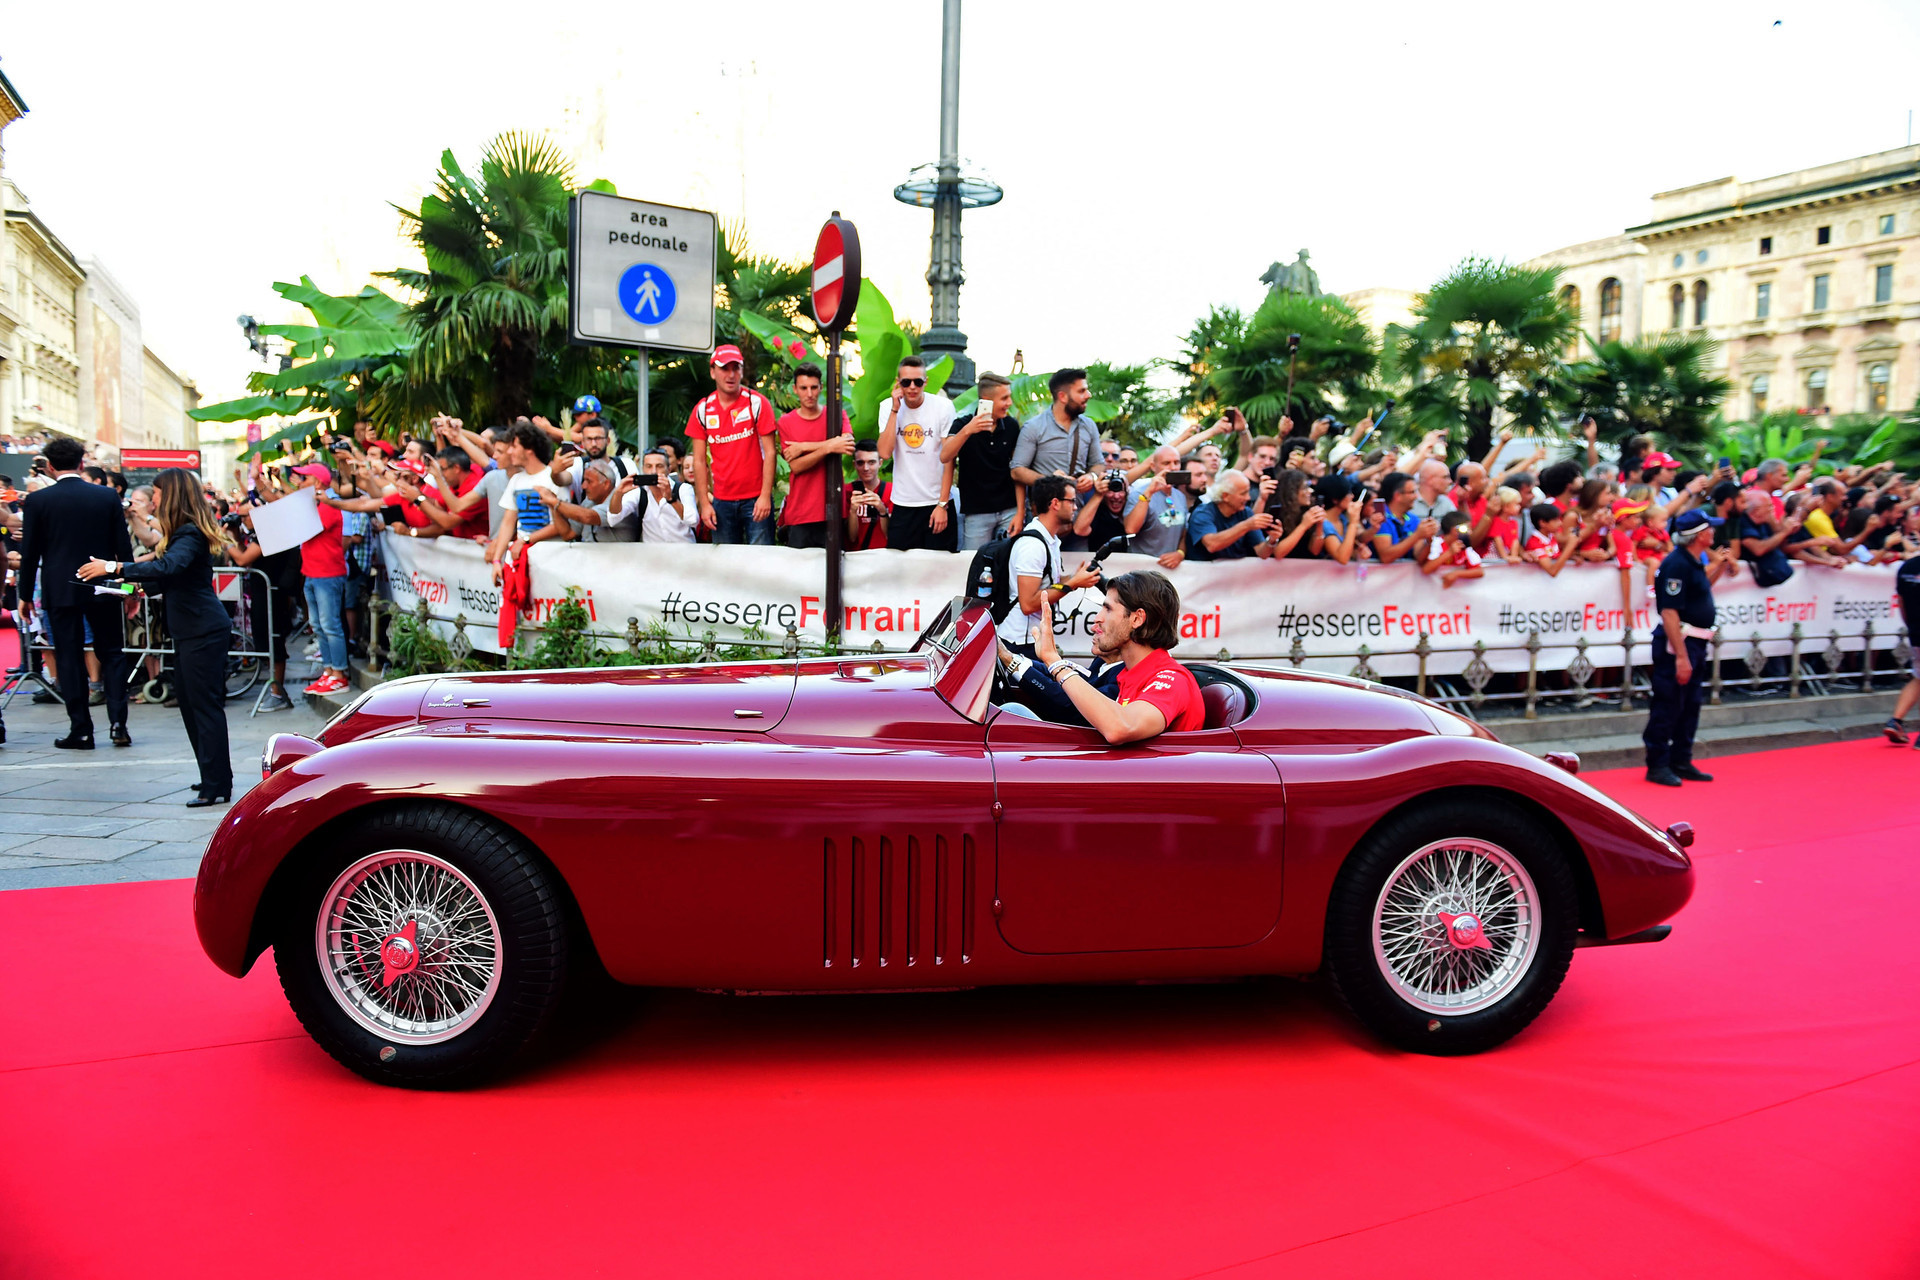 2019 Ferrari 90 Years celebration at Milan | 4 Sept 2019 website 18.jpg